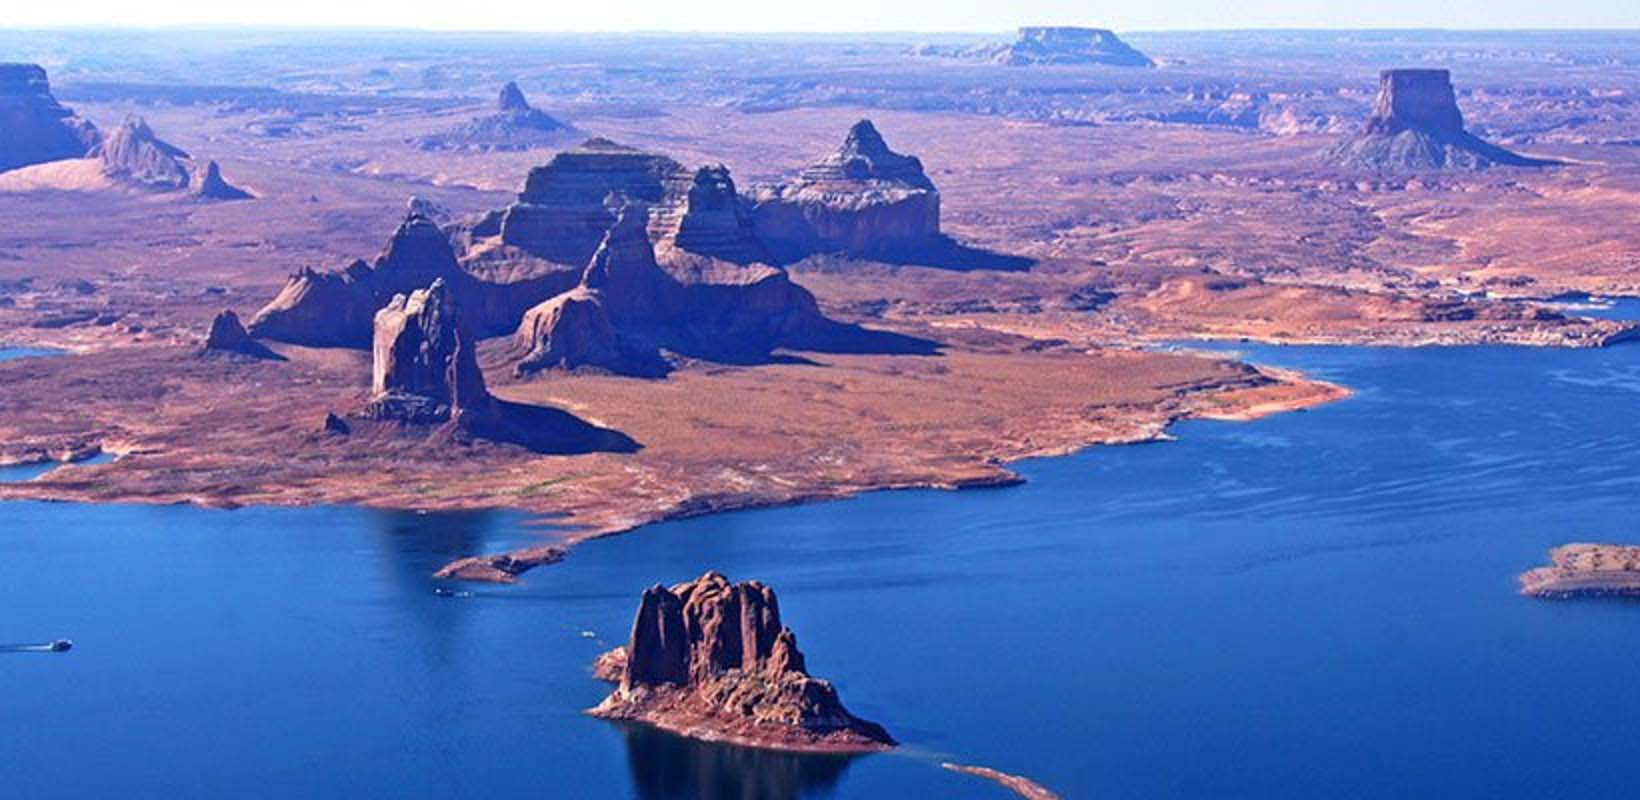 skyview horseshoe bend and lake powell air tour from page